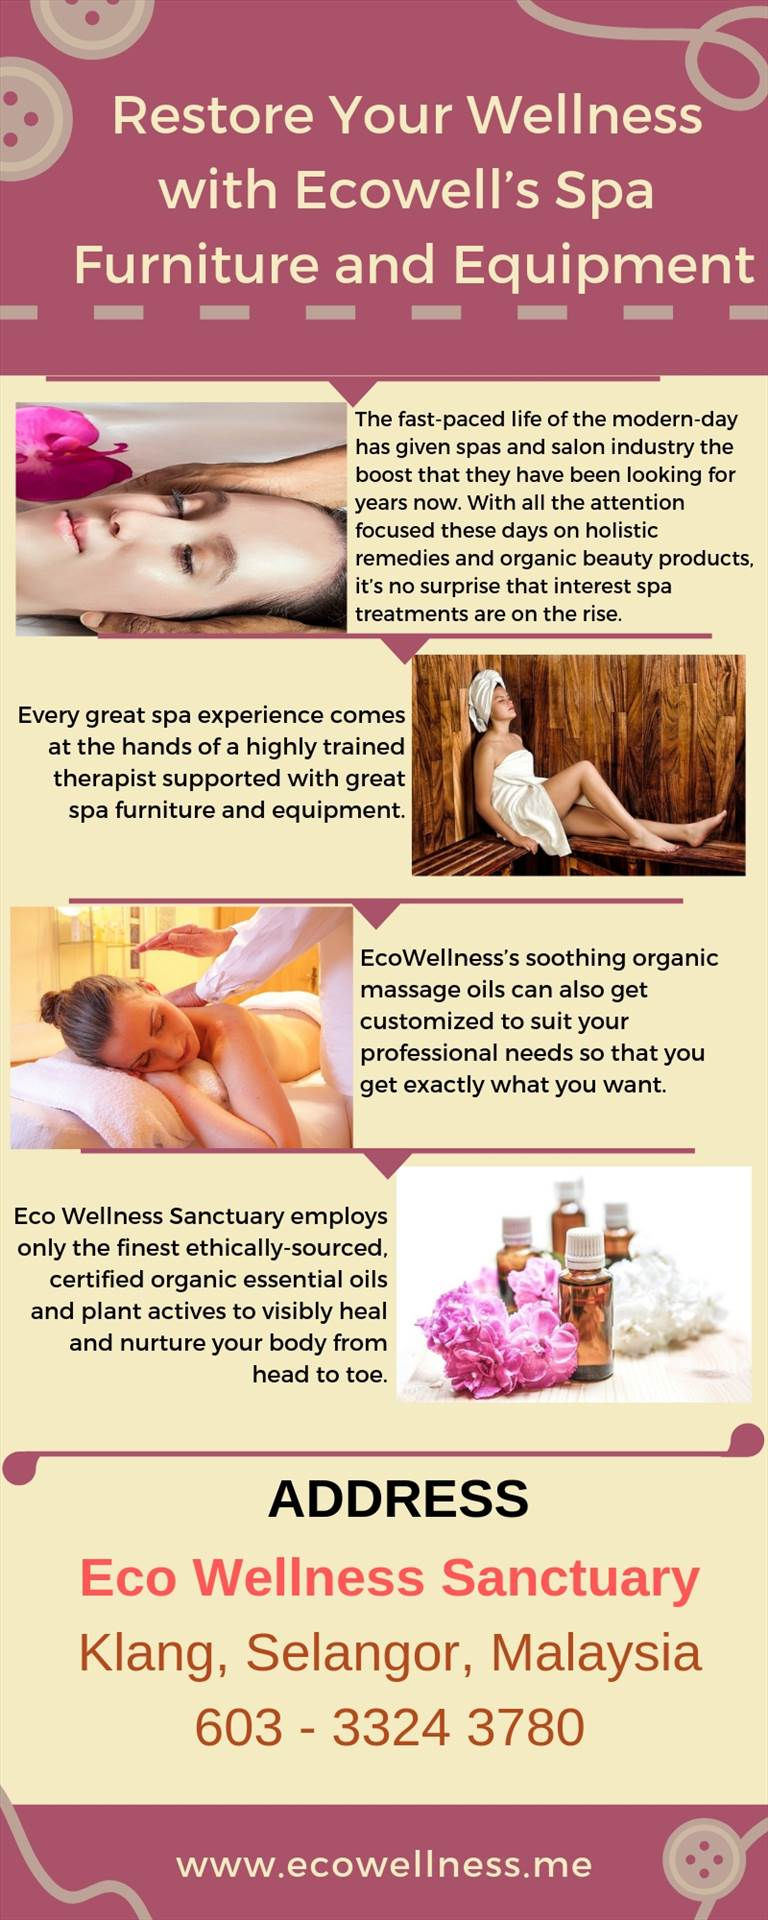 Restore Your Wellness with Ecowell's Spa Furniture and Equipment.jpg Eco Wellness Sanctuary brings you an exclusive range of spa therapies using nature's healing powers to awaken your bliss and nurture your mind, body, and spirit. For more details, visit: https://bit.ly/2DtaSld by ecowellness15